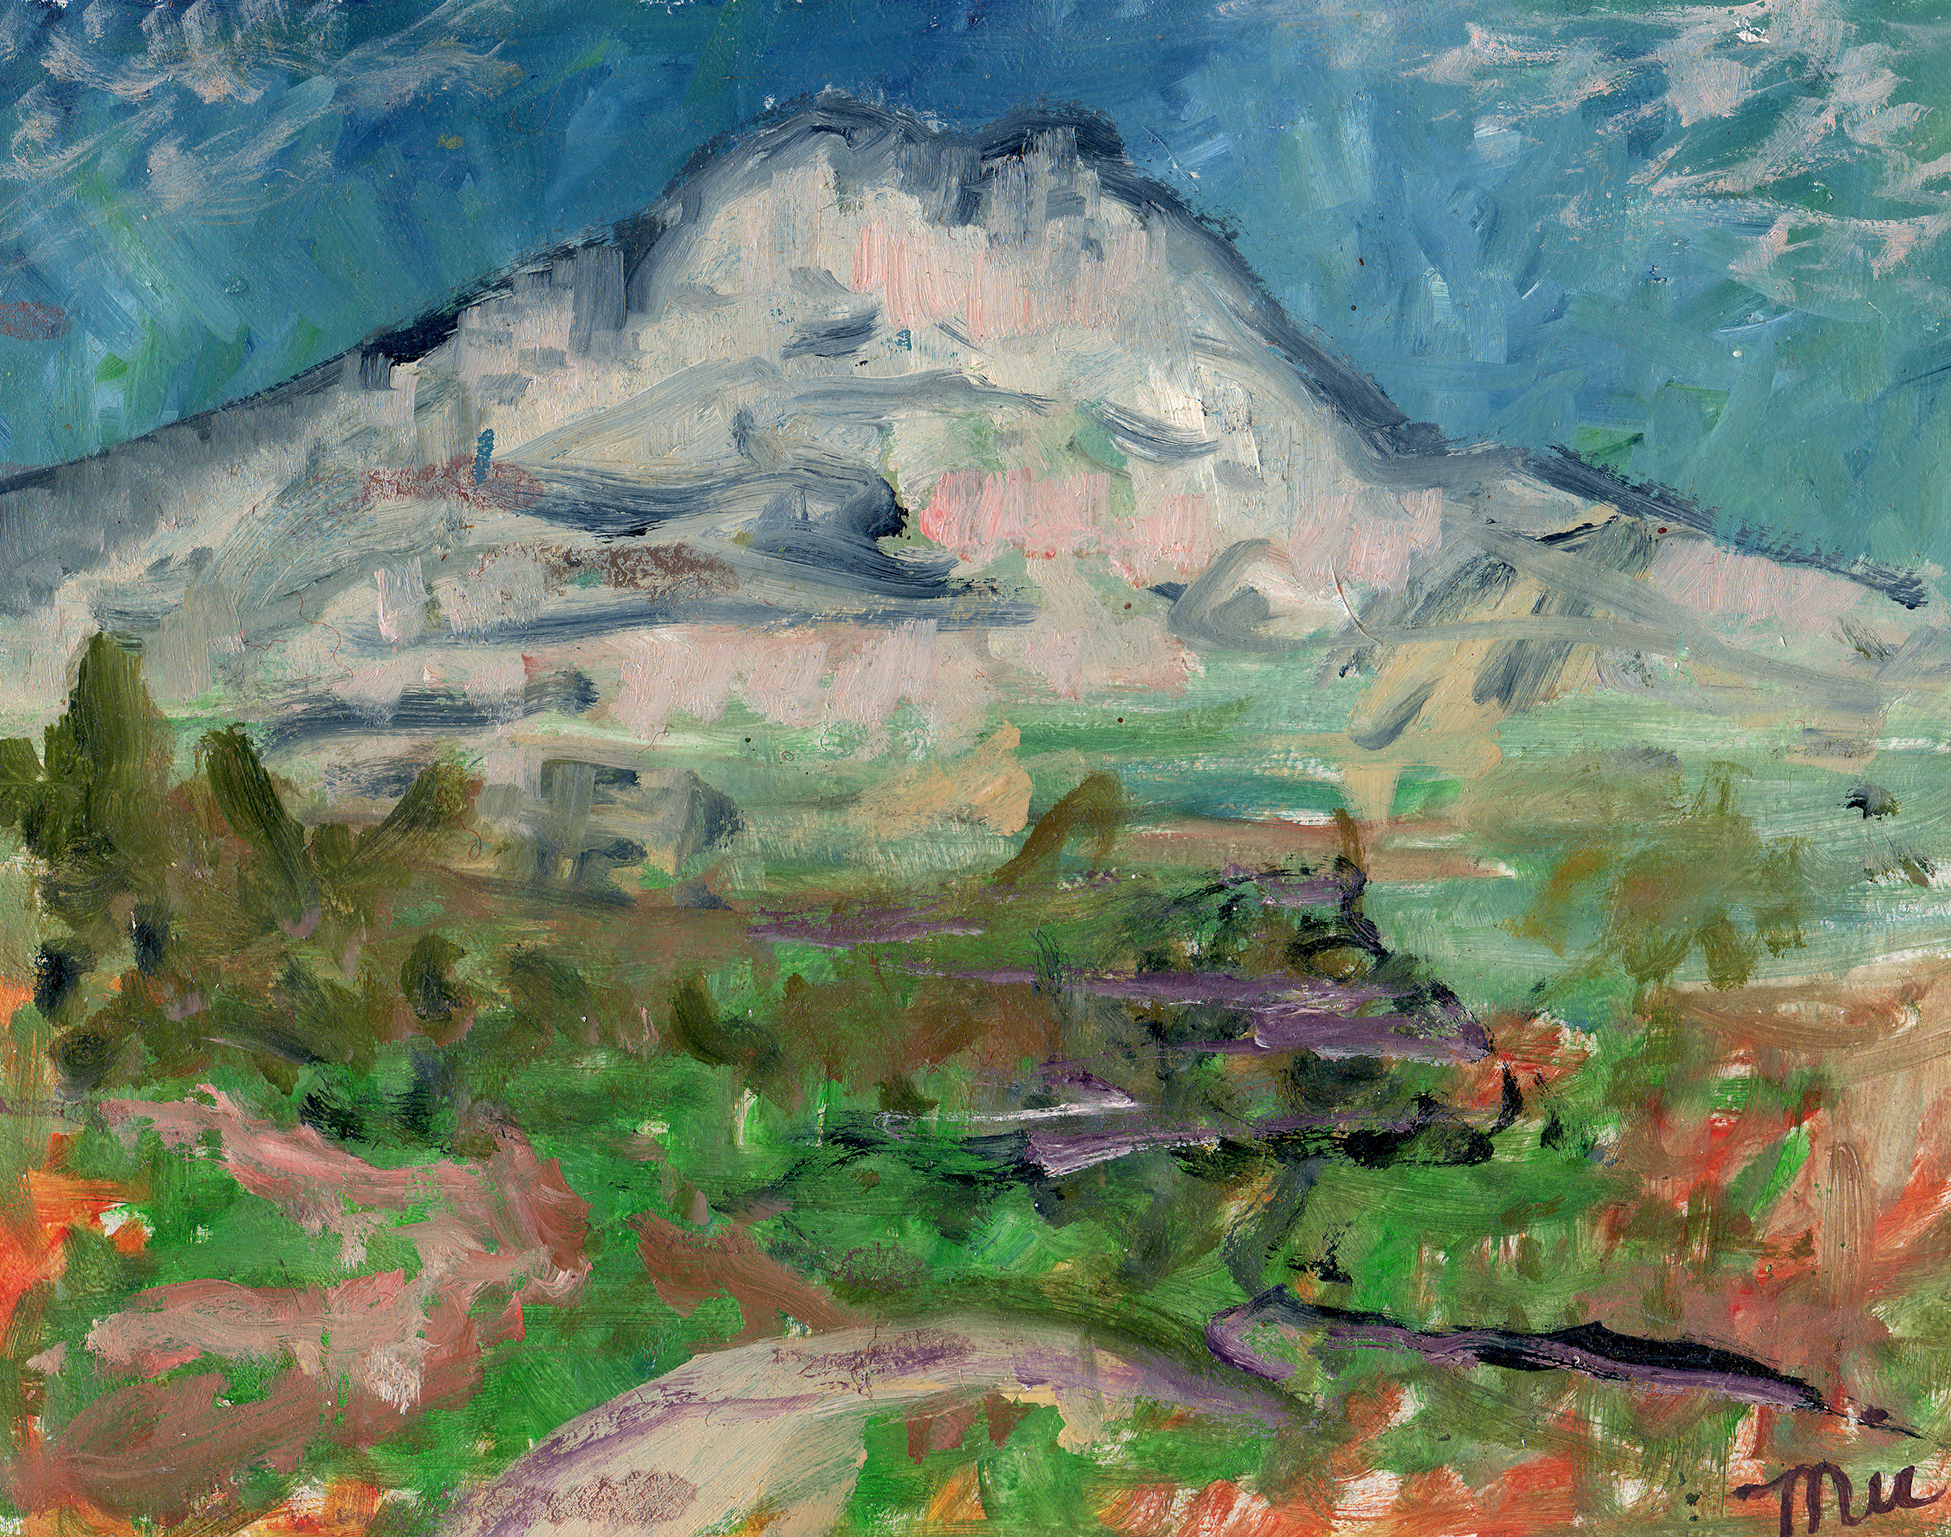 Cezanne's Mountain - Oil on PanelLate in his life in Aix en Provence, the painter Paul Cézanne painted Mount Sainte Victoire dozens of times.